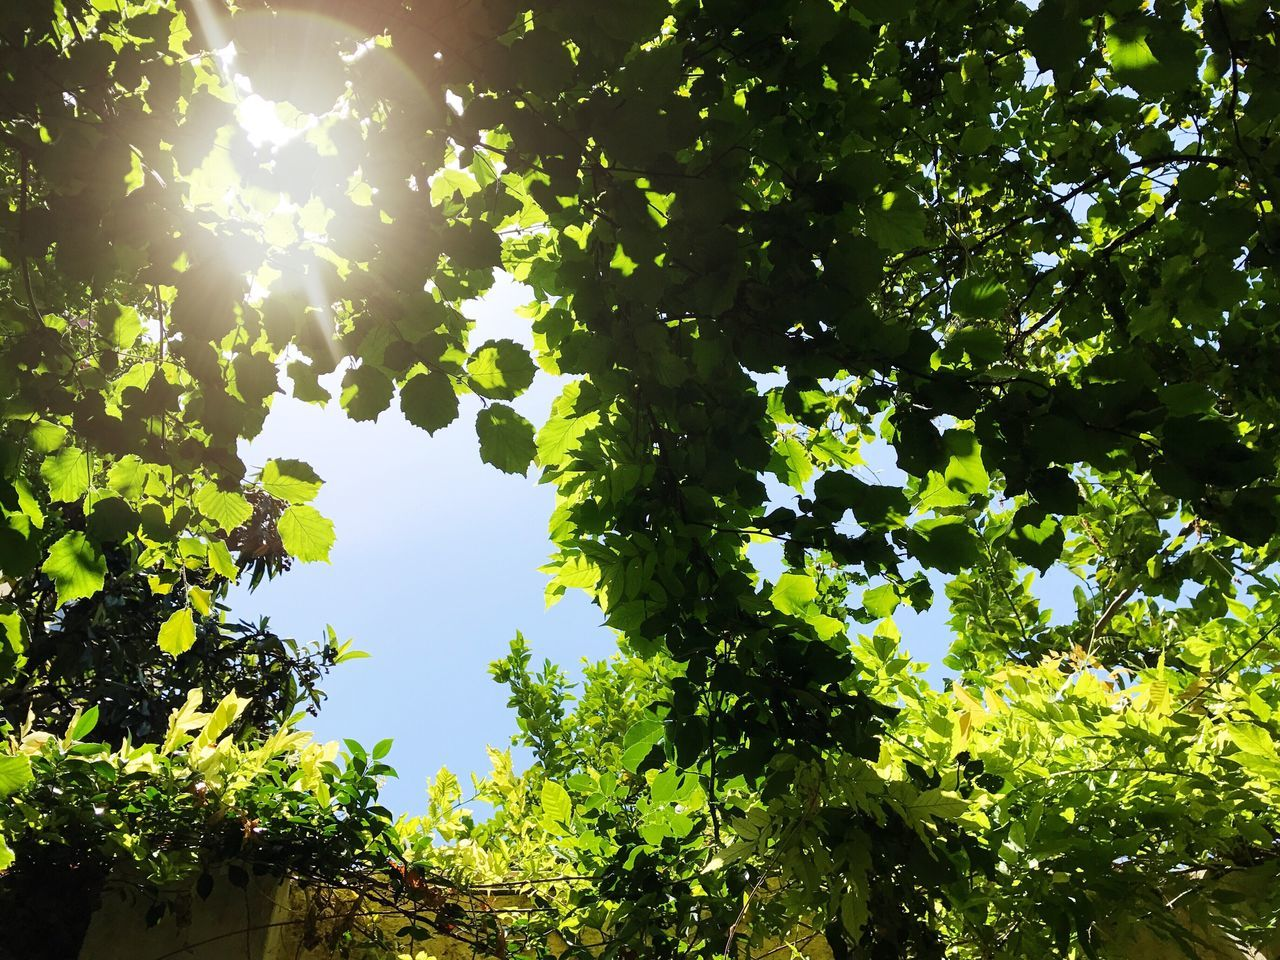 174/365 Tree Low Angle View Leaf Green Color Nature Growth Beauty In Nature Sunlight Sun Day Outdoors Branch No People Fruit Freshness Sky Close-up